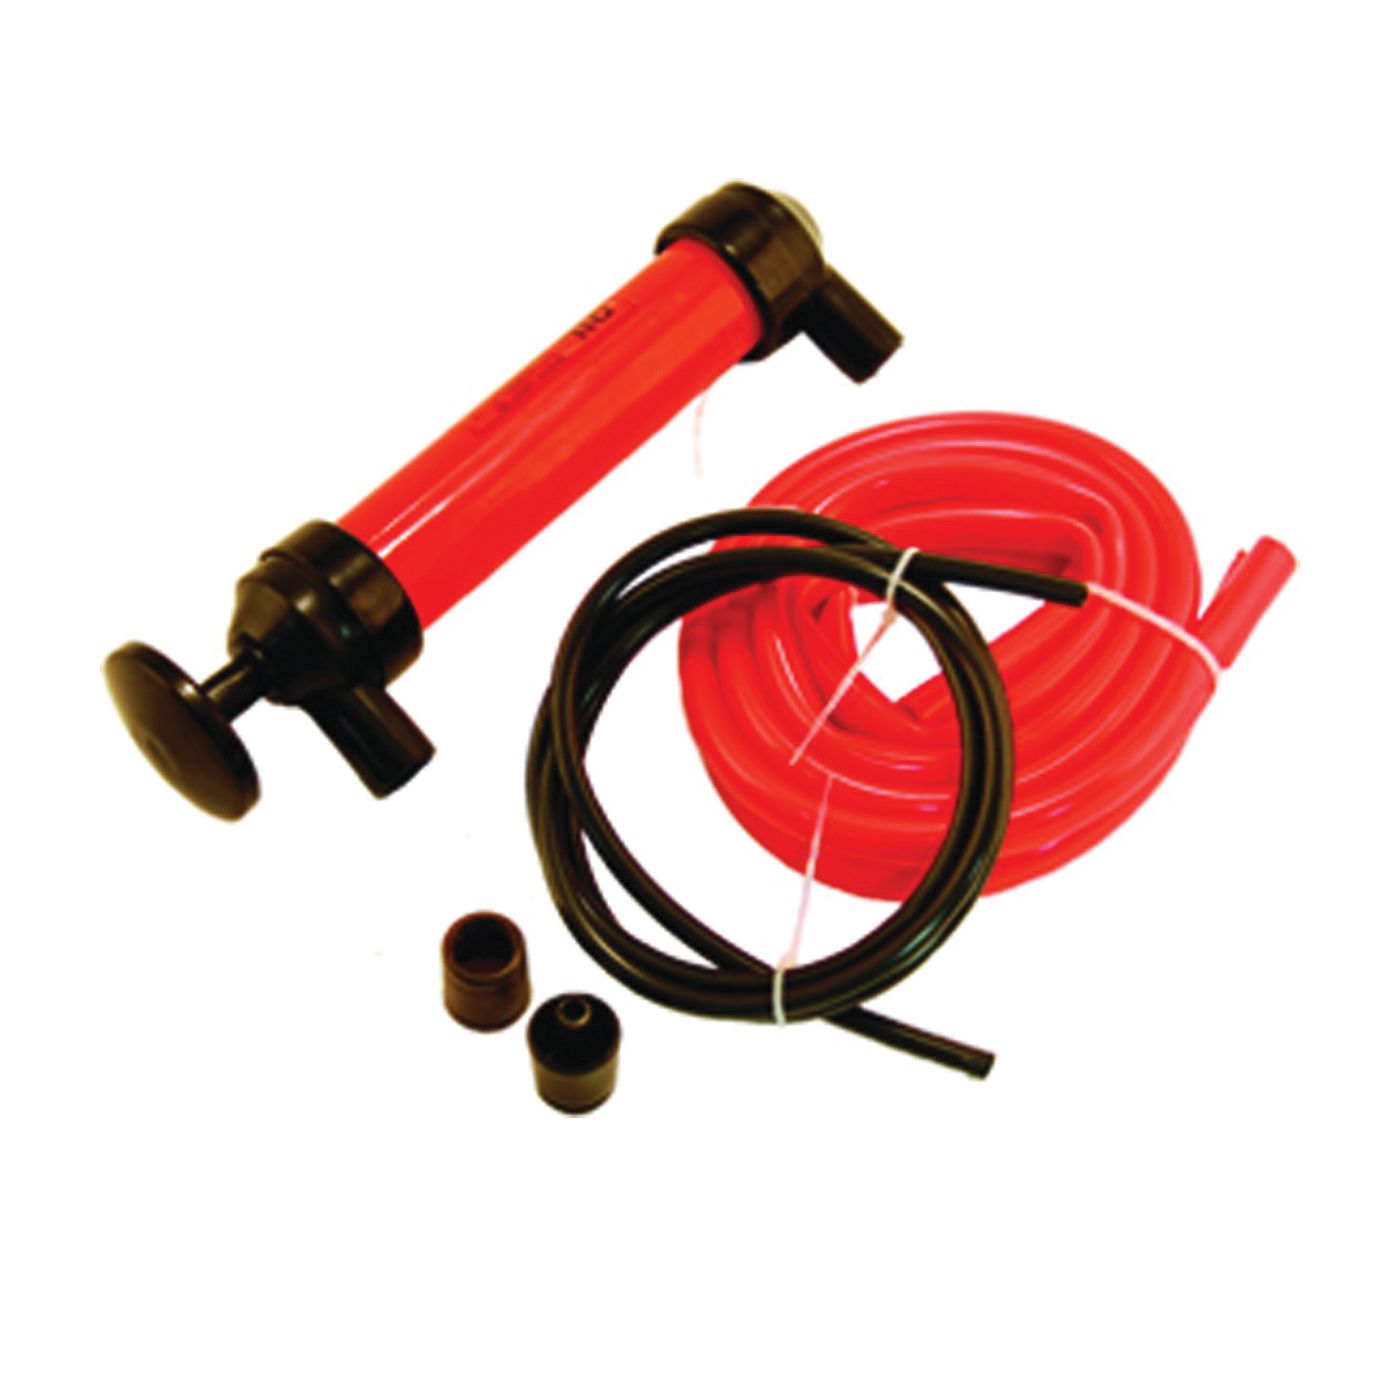 Picture of ARNOLD 490-850-0008 Siphon Pump Kit